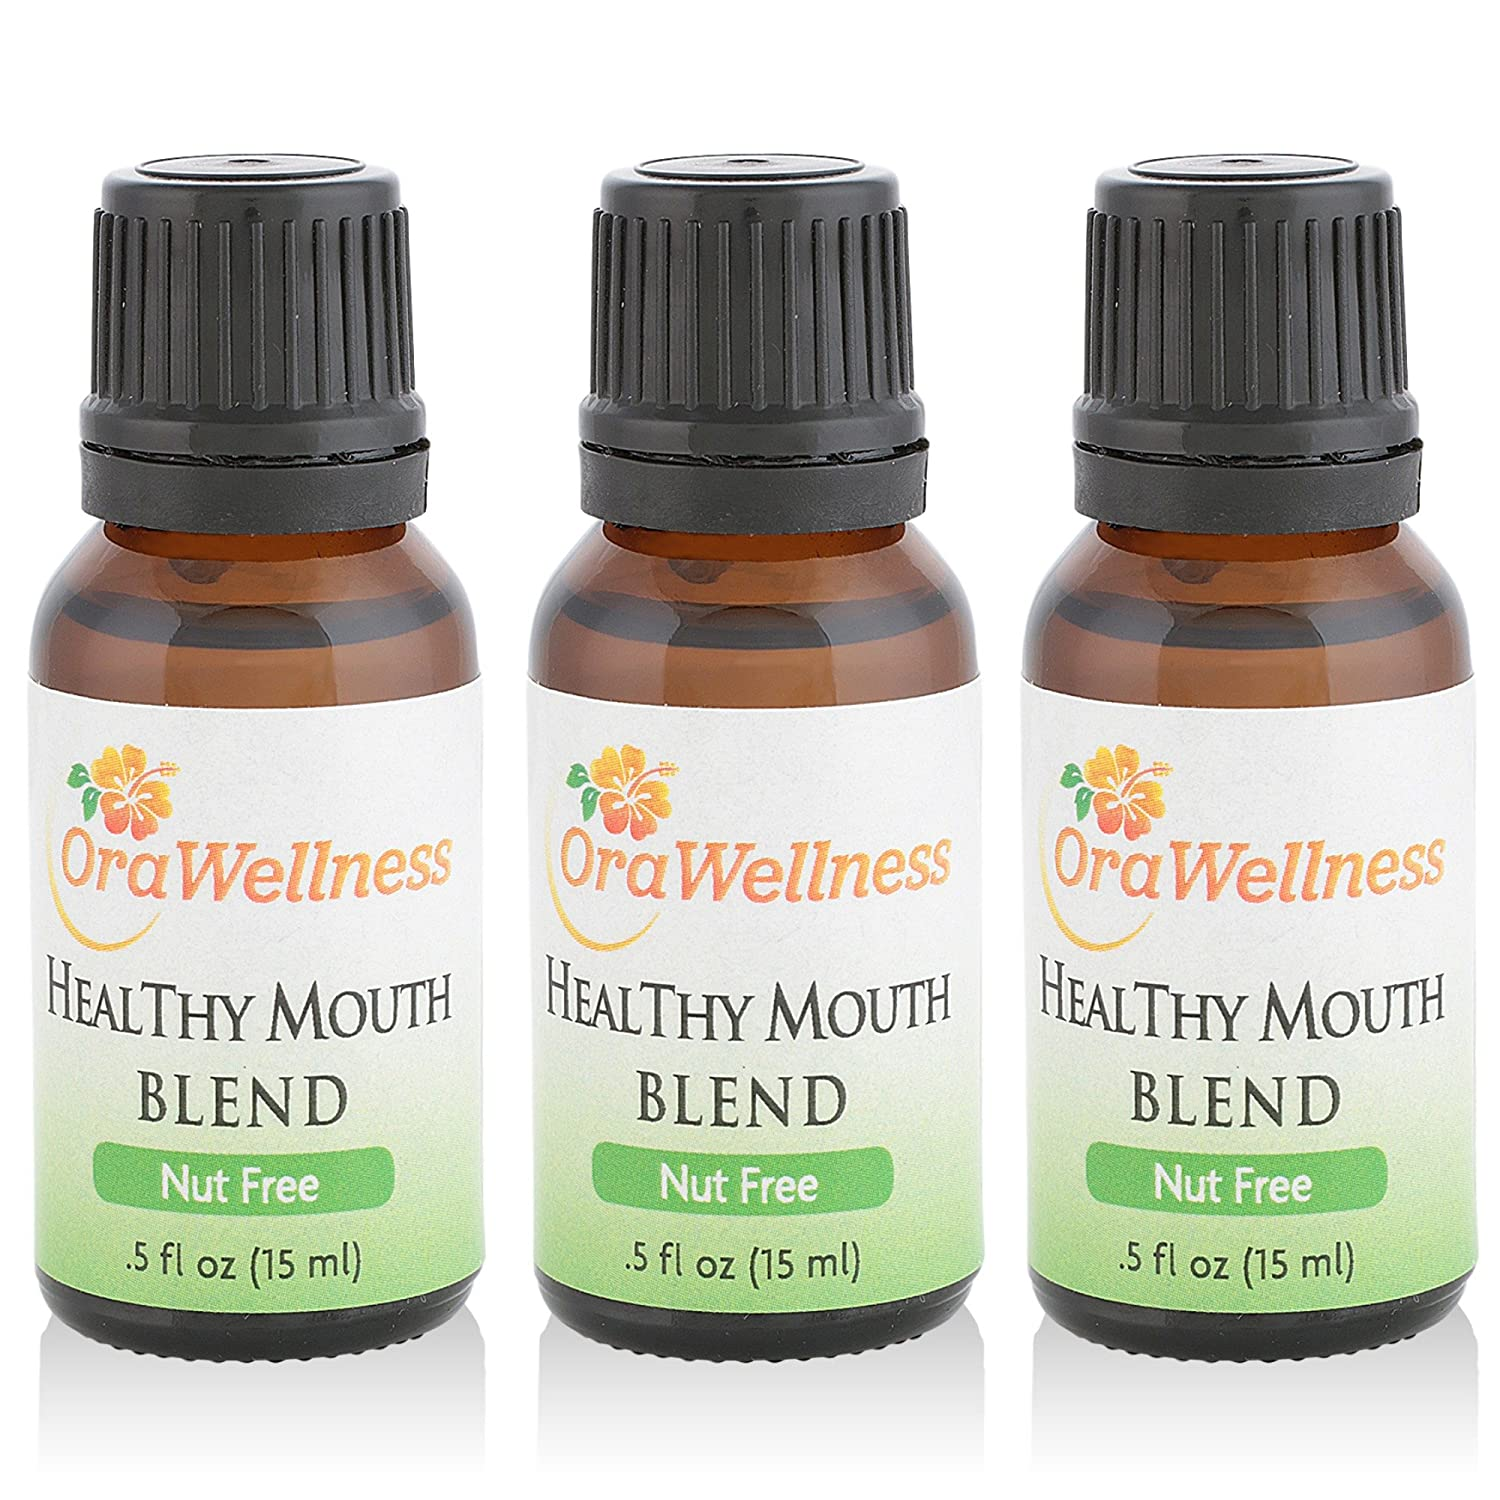 OraWellness NUT FREE HealThy Mouth Blend Tooth Oil, Organic Toothpaste & Mouthwash Alternative With Clove Oil Promotes Healthy Teeth & Gums, 3 Pack